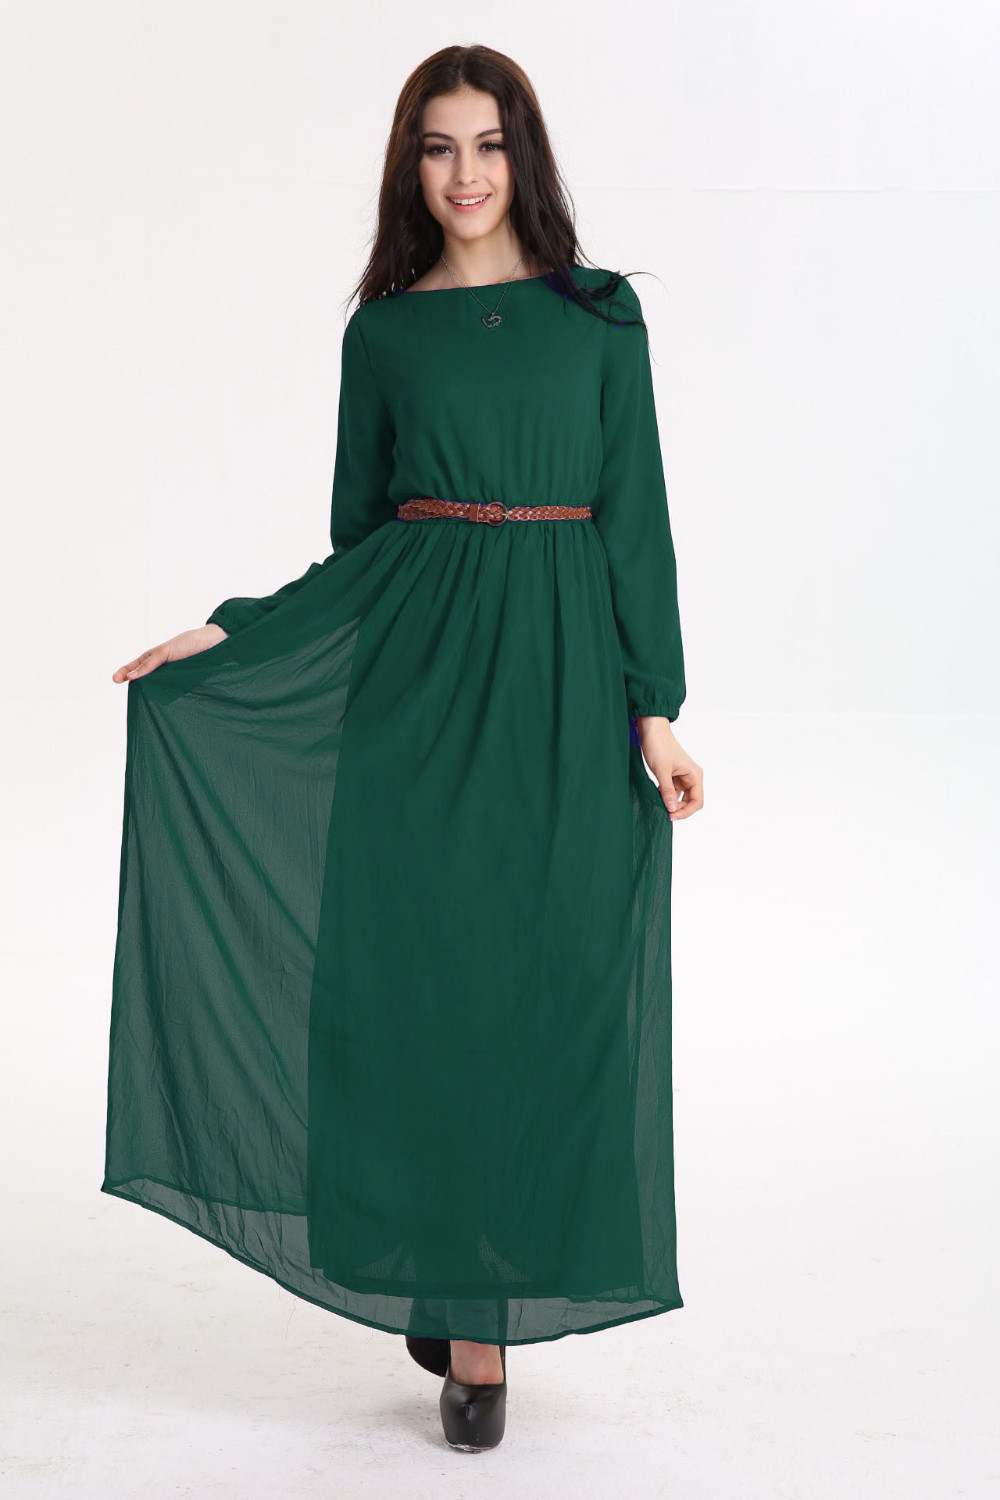 Arab Femal Long Dress Muslim Women Summer Dresses Islamic Fashion Kemeja Lavender Contrast Multicolor Shop At Velvet Minor Color Difference Maybe Existed Please Understand And Thank You Very Much